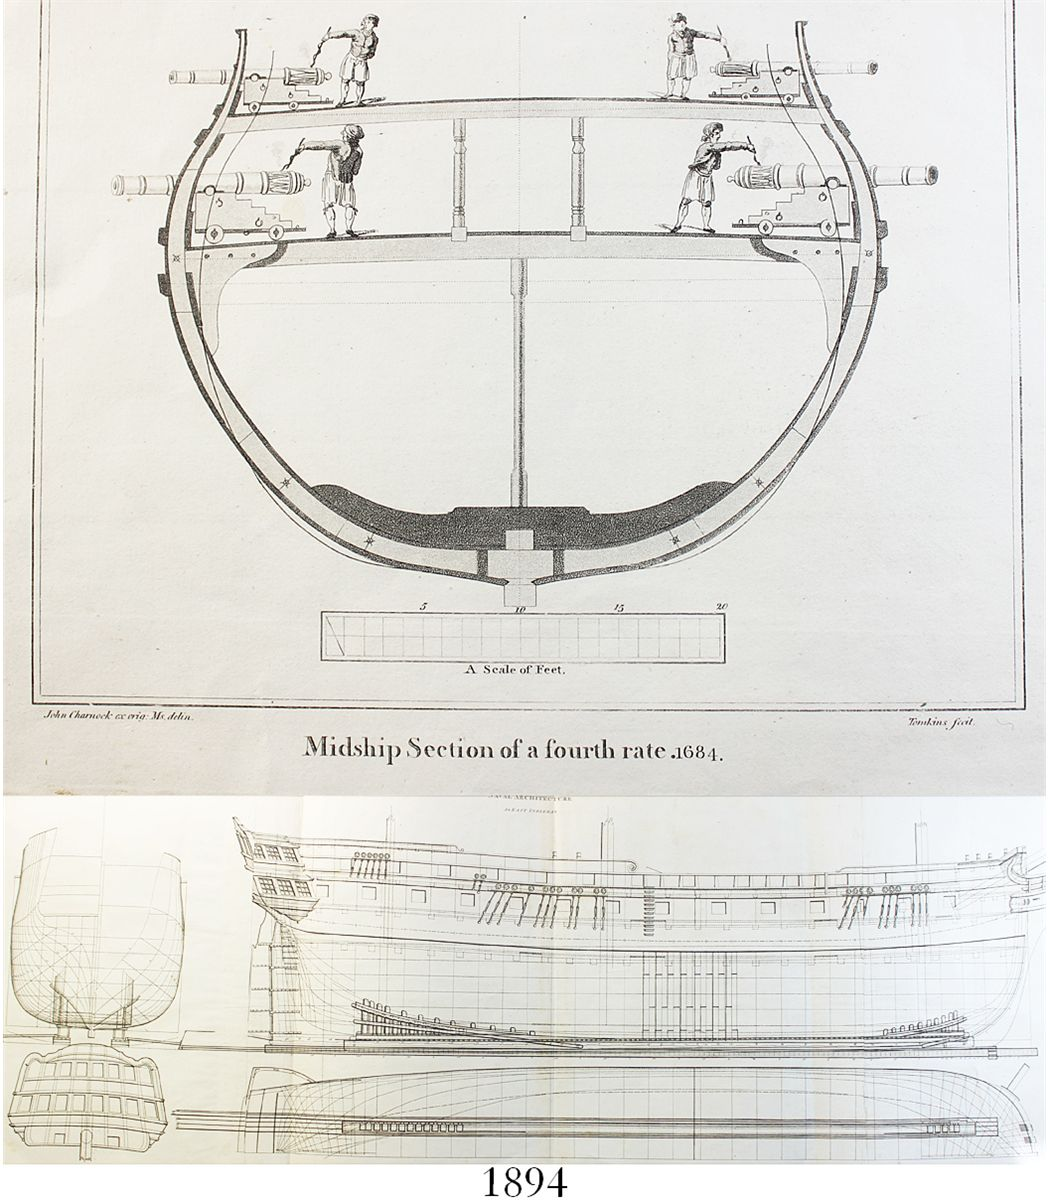 Lot of 2 ship diagrams east indiaman 1816 and fourth rate 1684 lot of 2 ship diagrams east indiaman 1816 and fourth rate 1684 from 1800s publications pooptronica Images